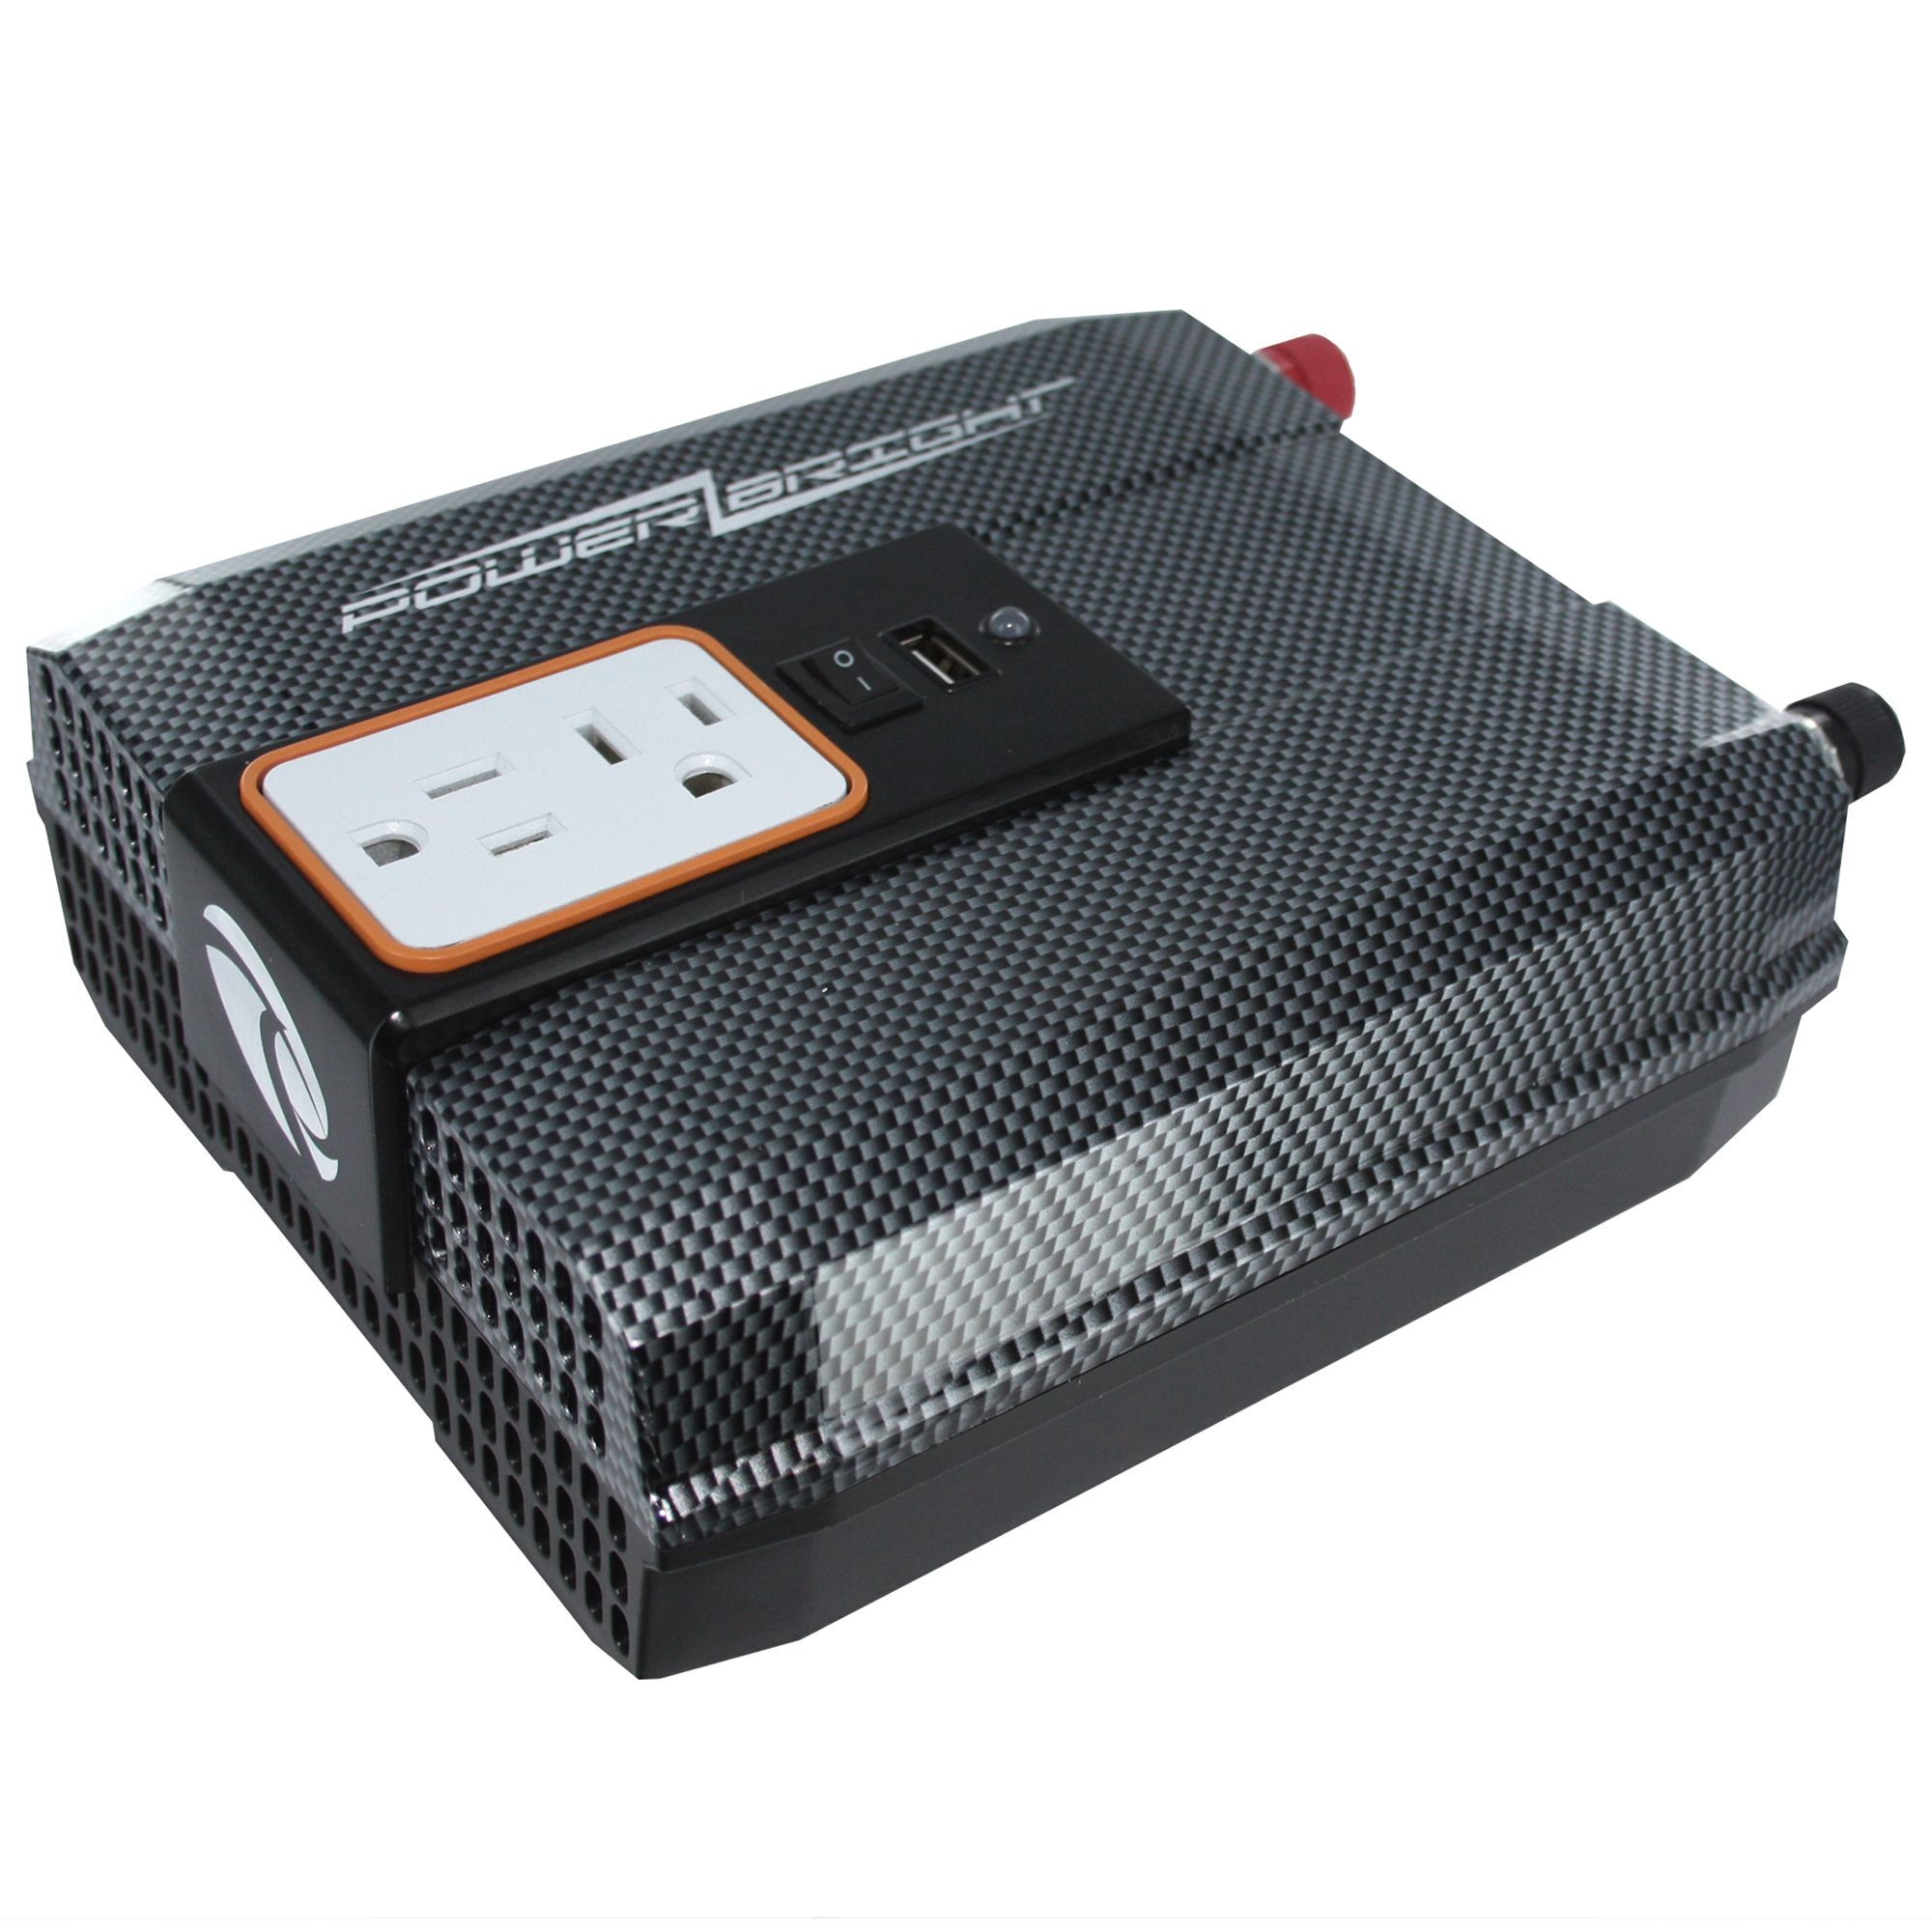 POWER INVERTER 750 WATT 12V DC TO 110V AC WITH USB